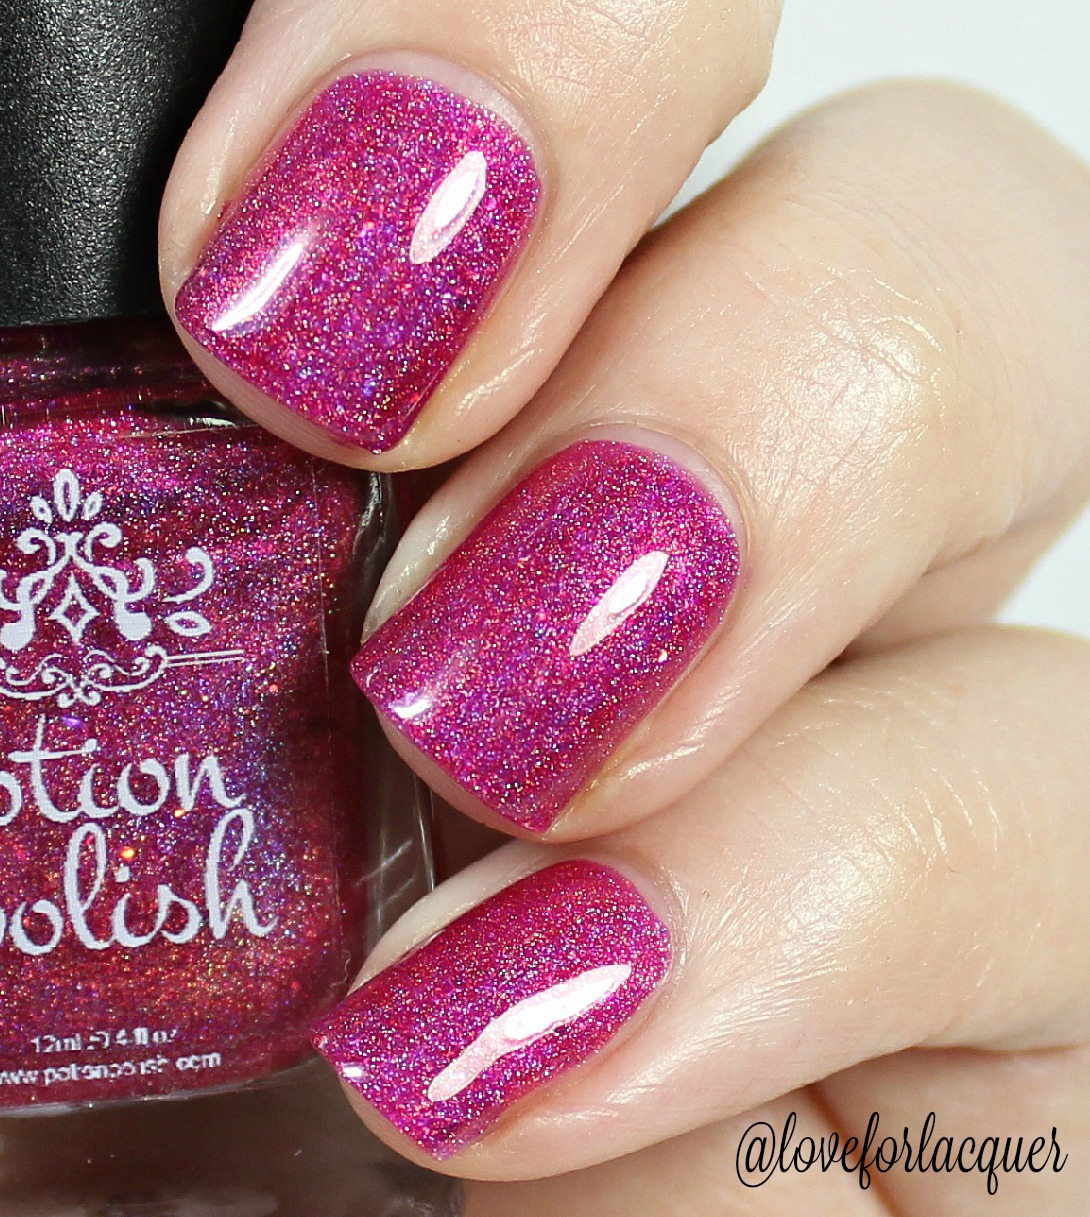 PotionPolishSummer'sLastRose